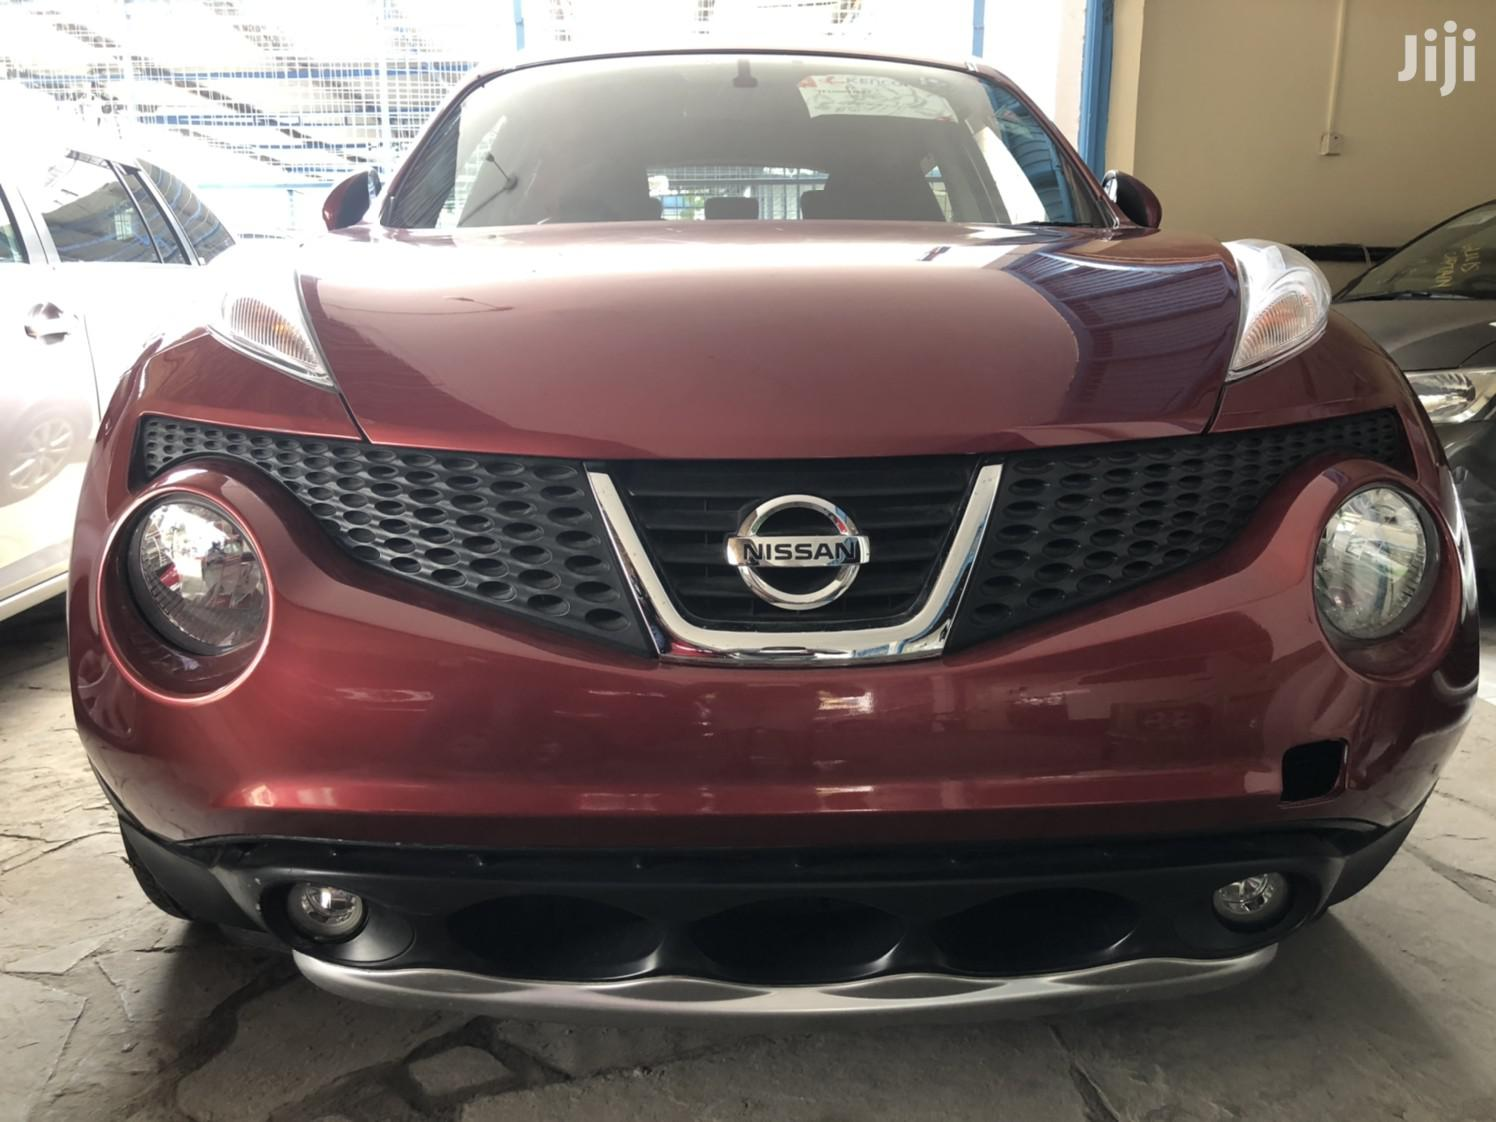 Nissan Juke 2013 Red | Cars for sale in Tudor, Mombasa, Kenya